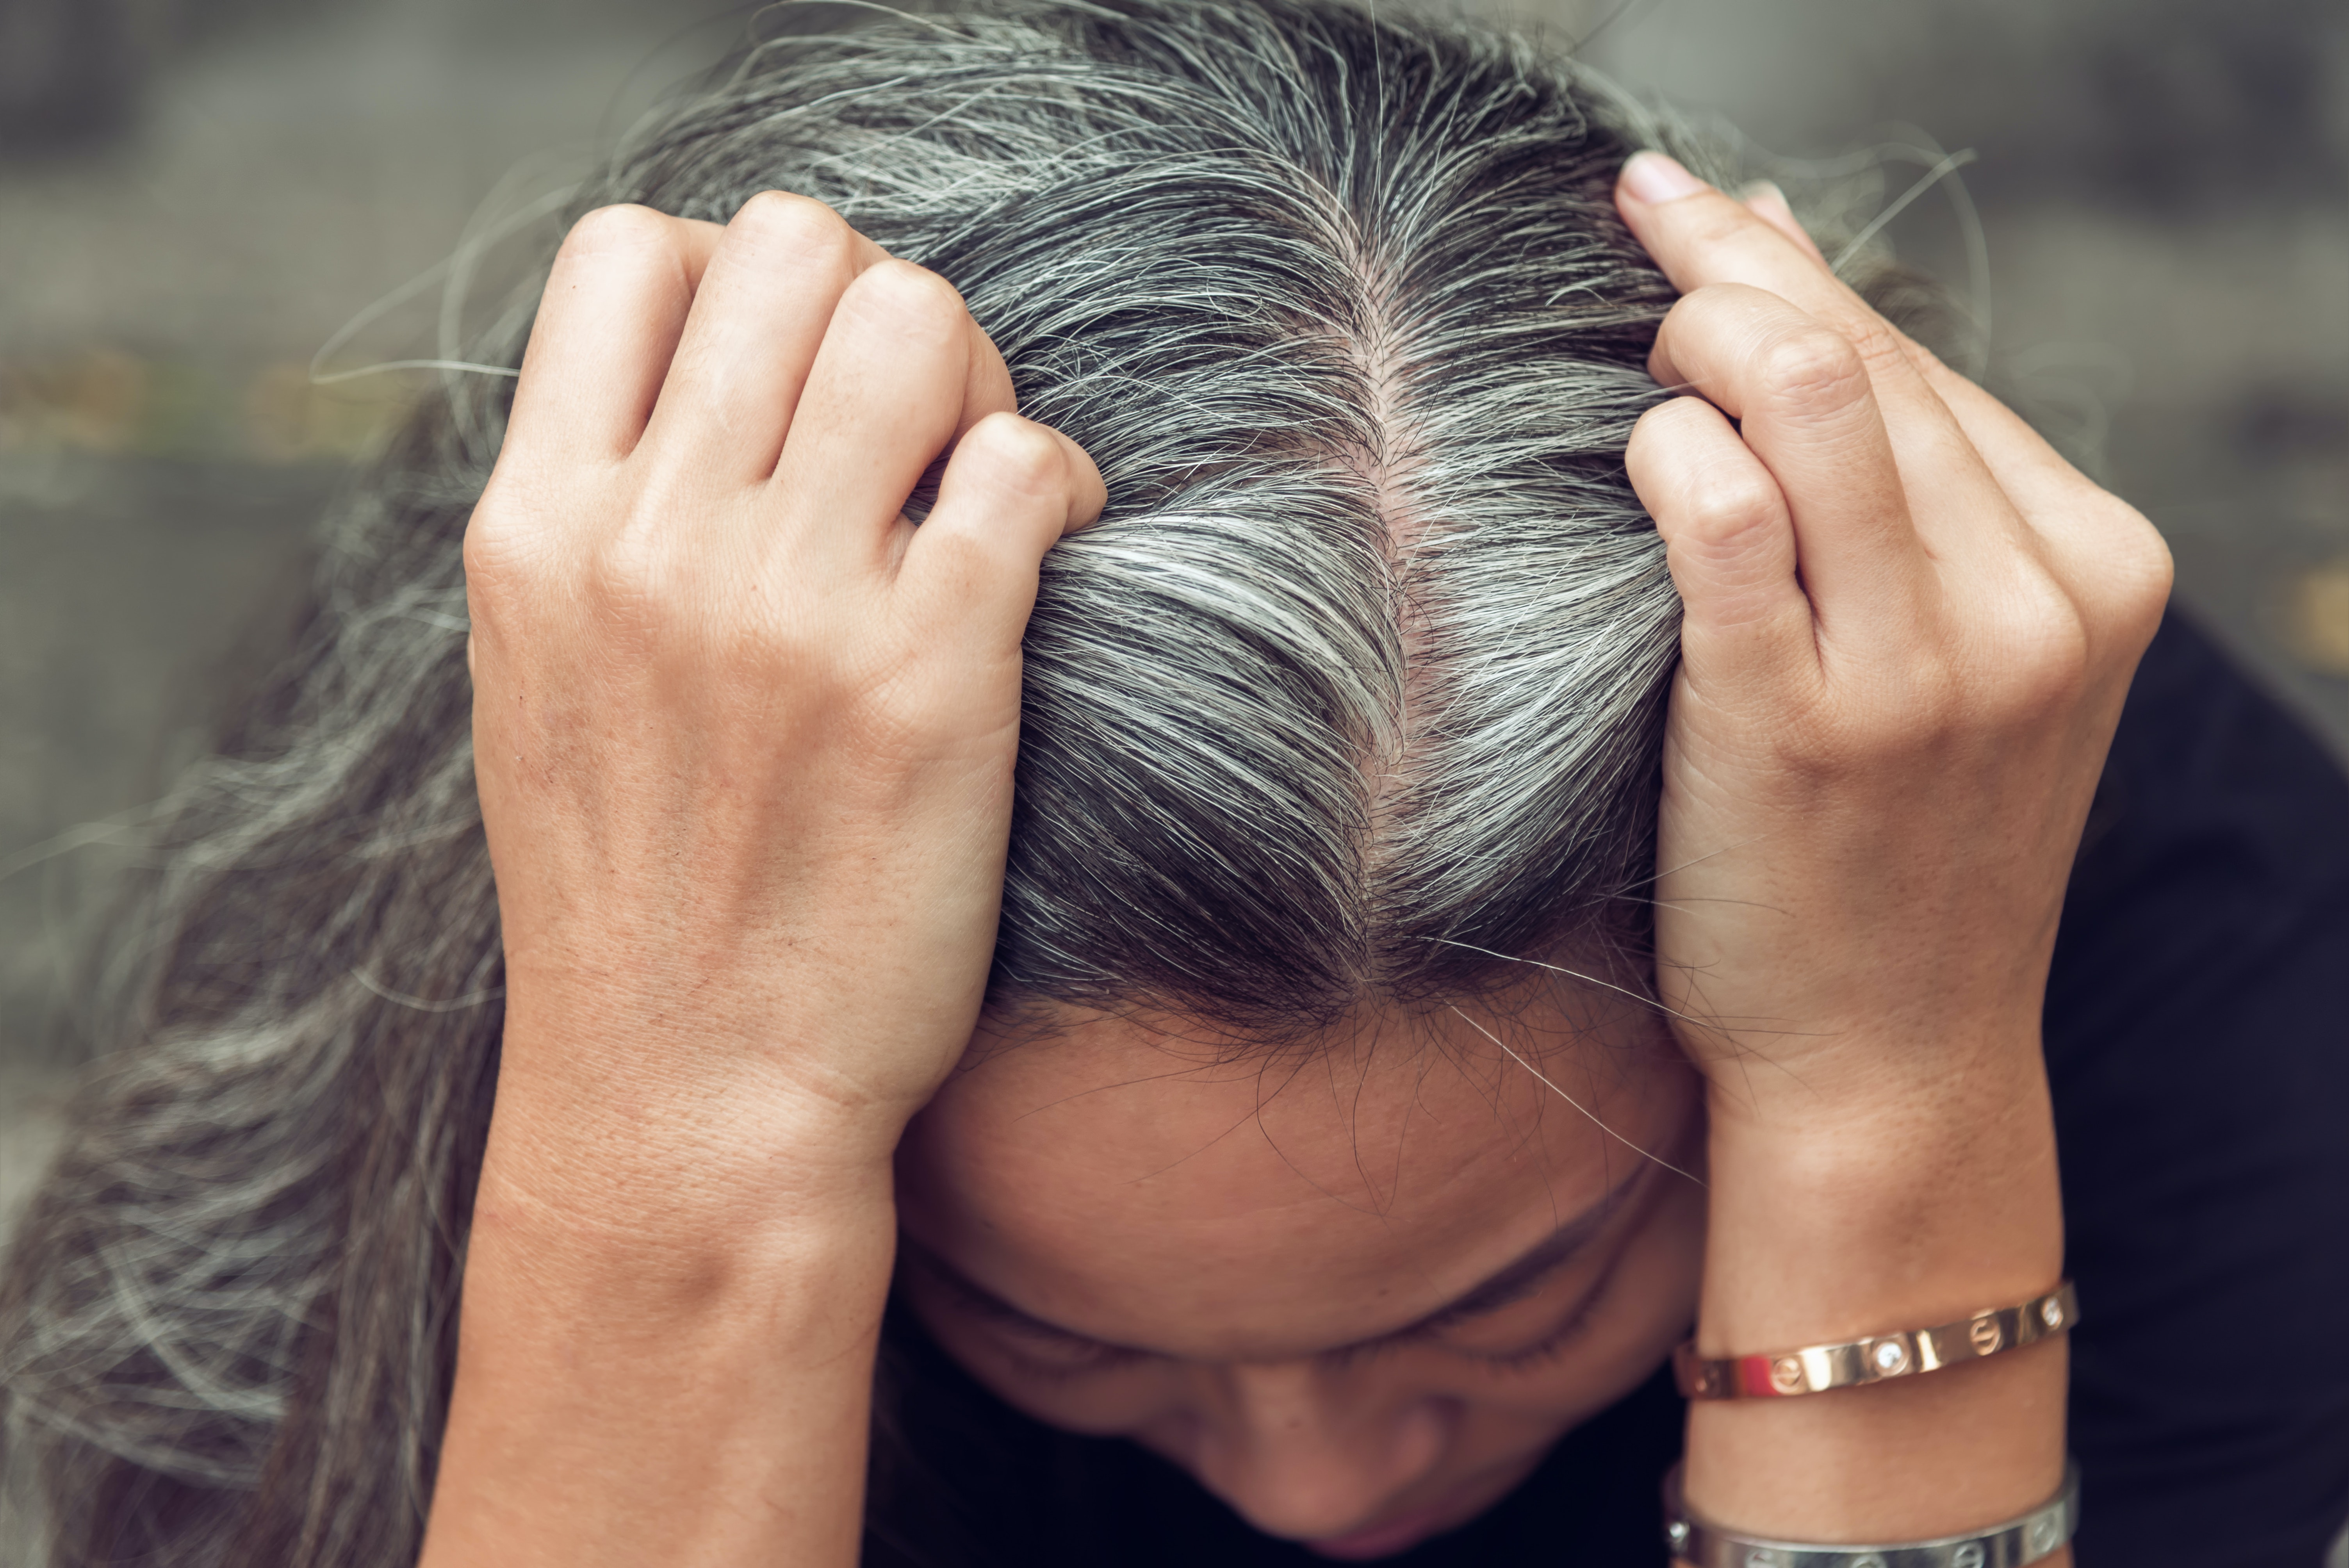 An image depicting a person suffering from painful scalp bump symptoms